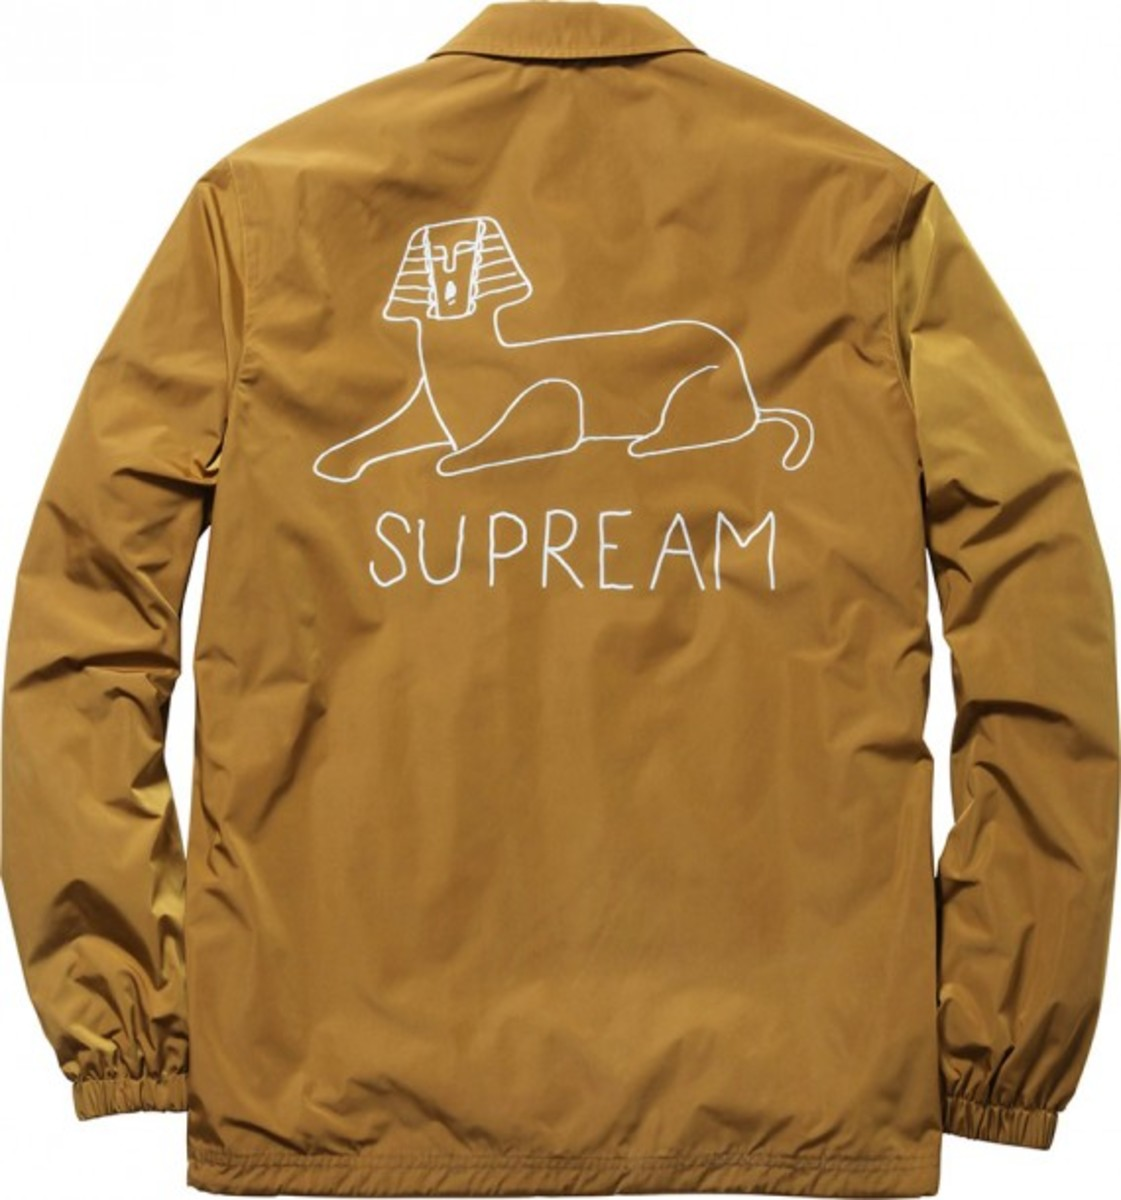 supreme-spring-summer-2013-outerwear-collection-23